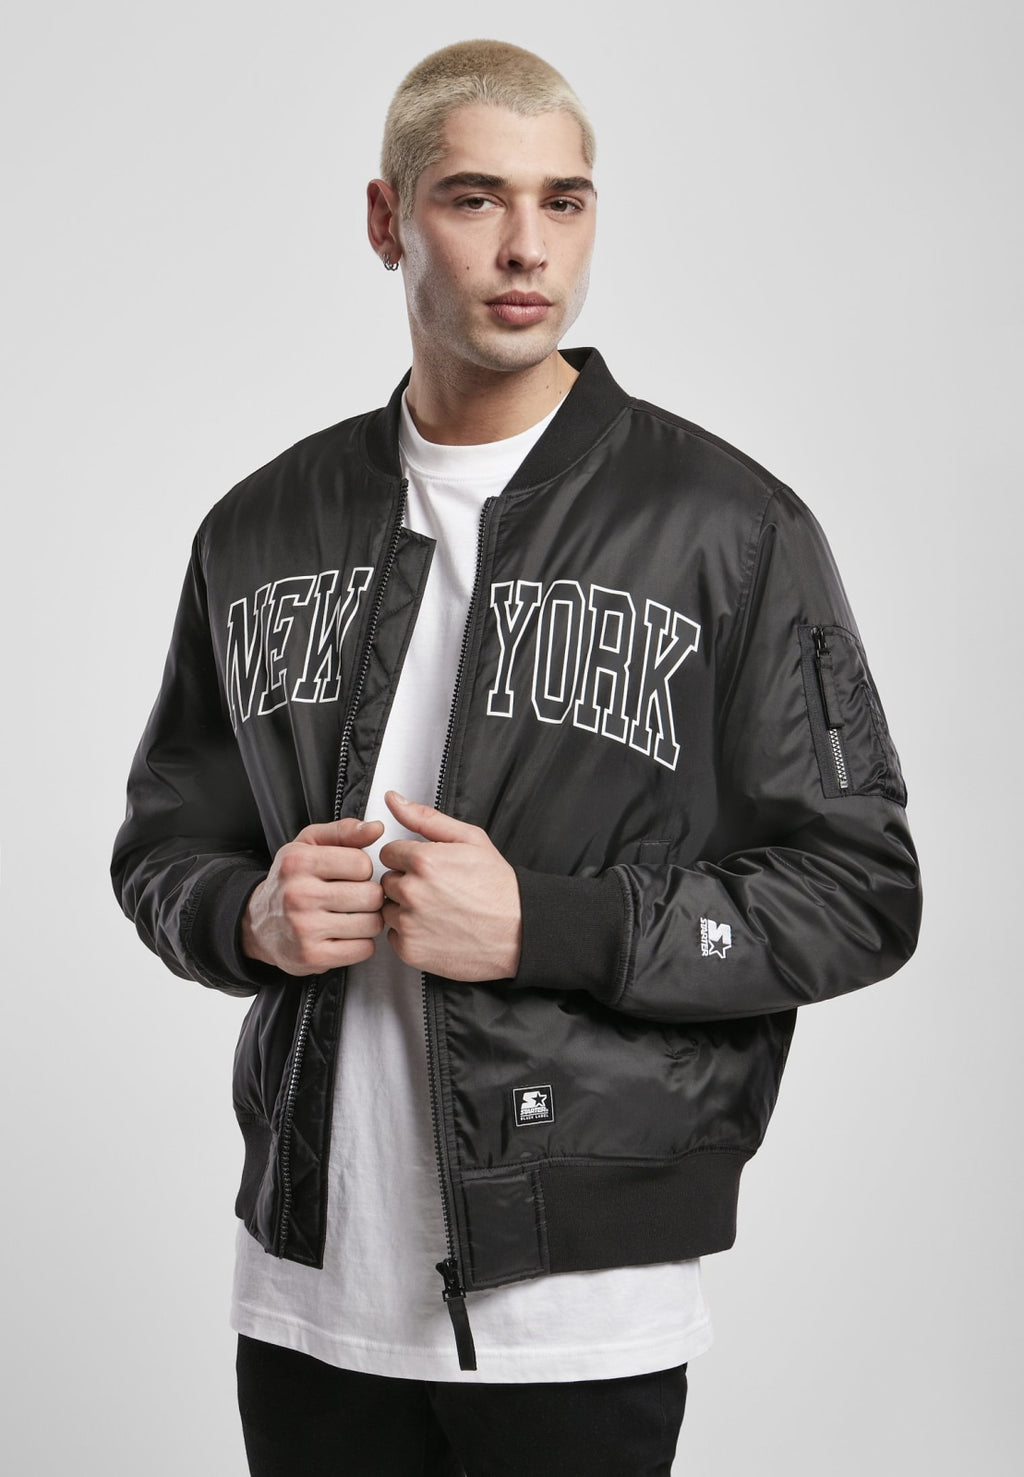 Starter New York Bomber Jacket S / Black Jacket Starter